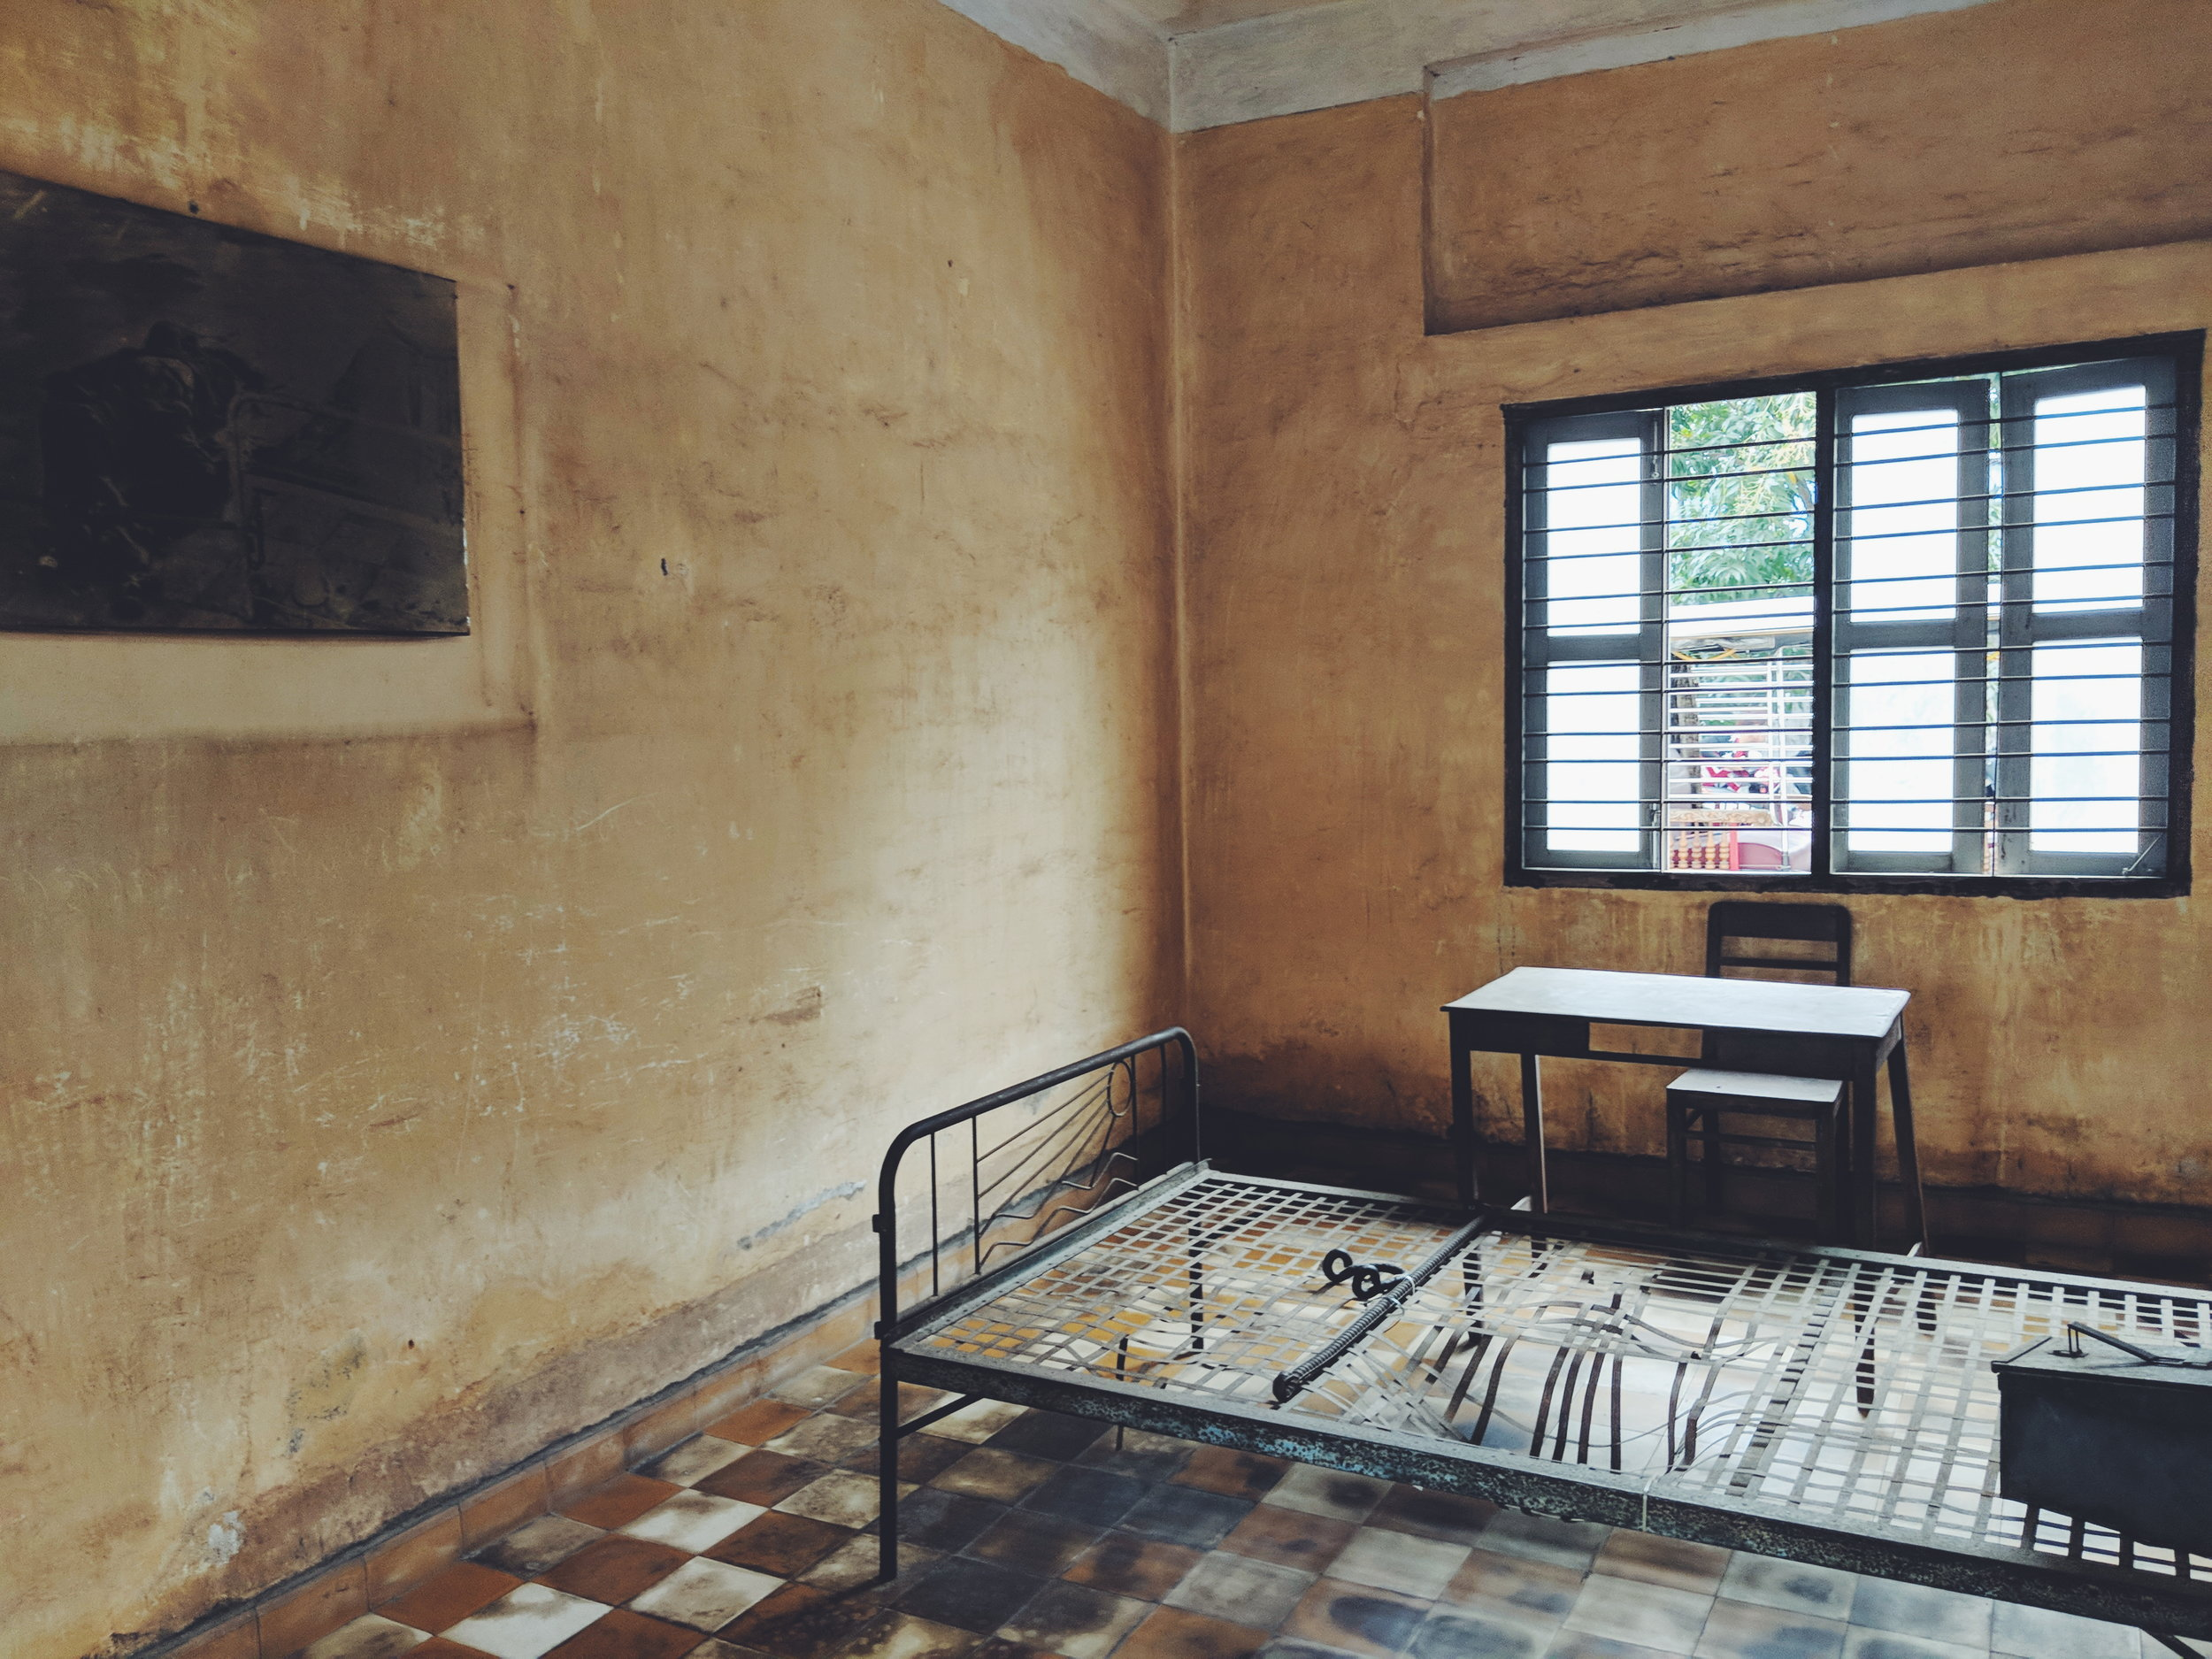 S21 Prison Cell